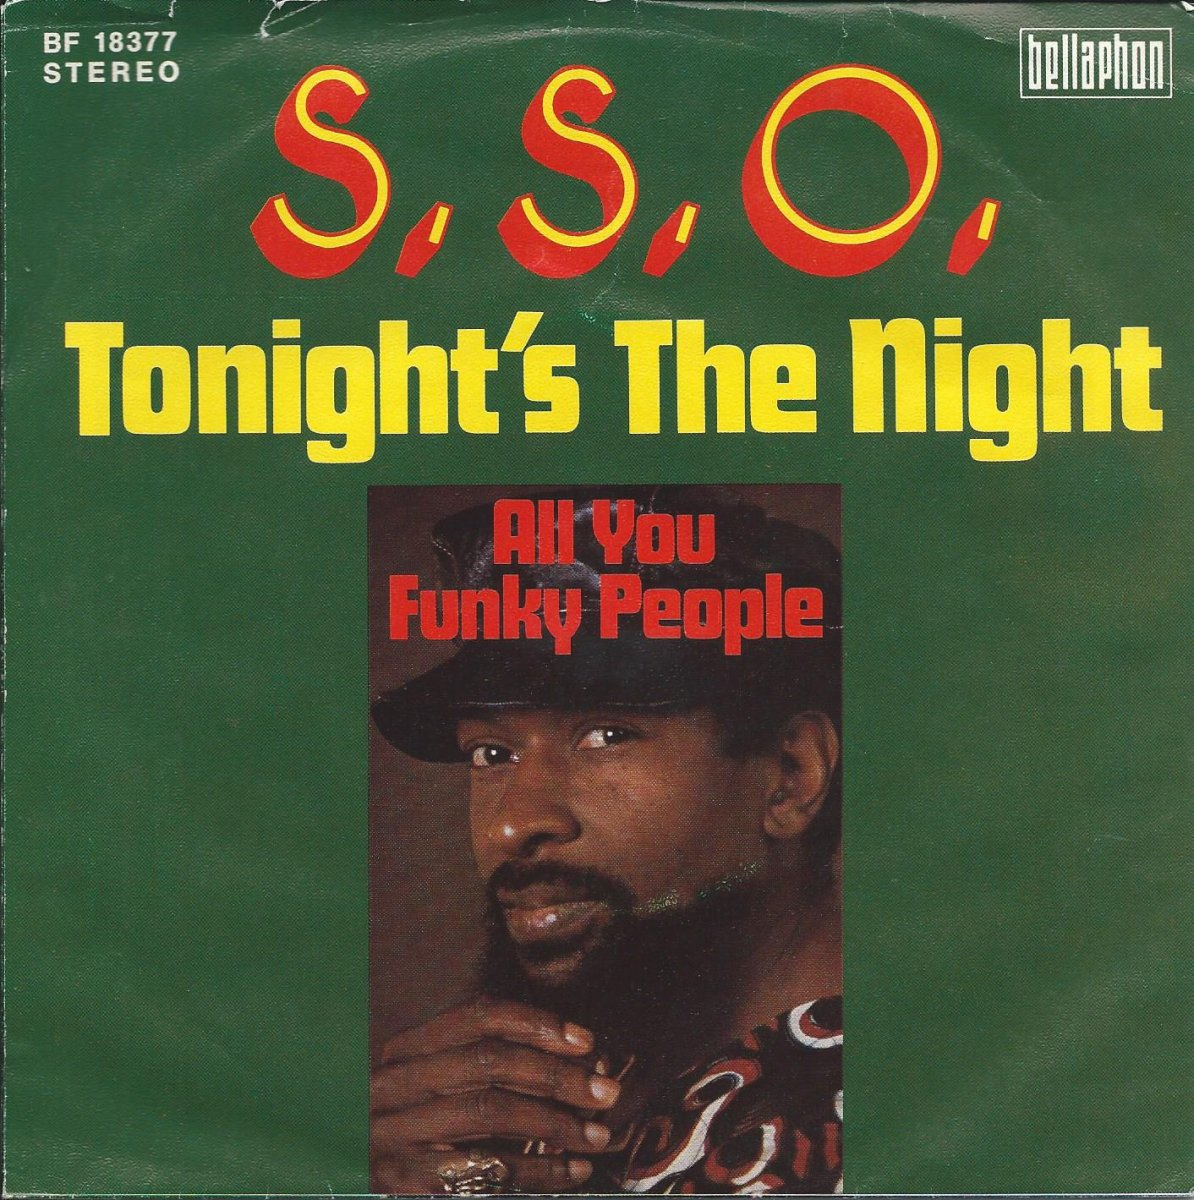 S.S.O. / TONIGHT'S THE NIGHT / ALL YOU FUNKY PEOPLE (7